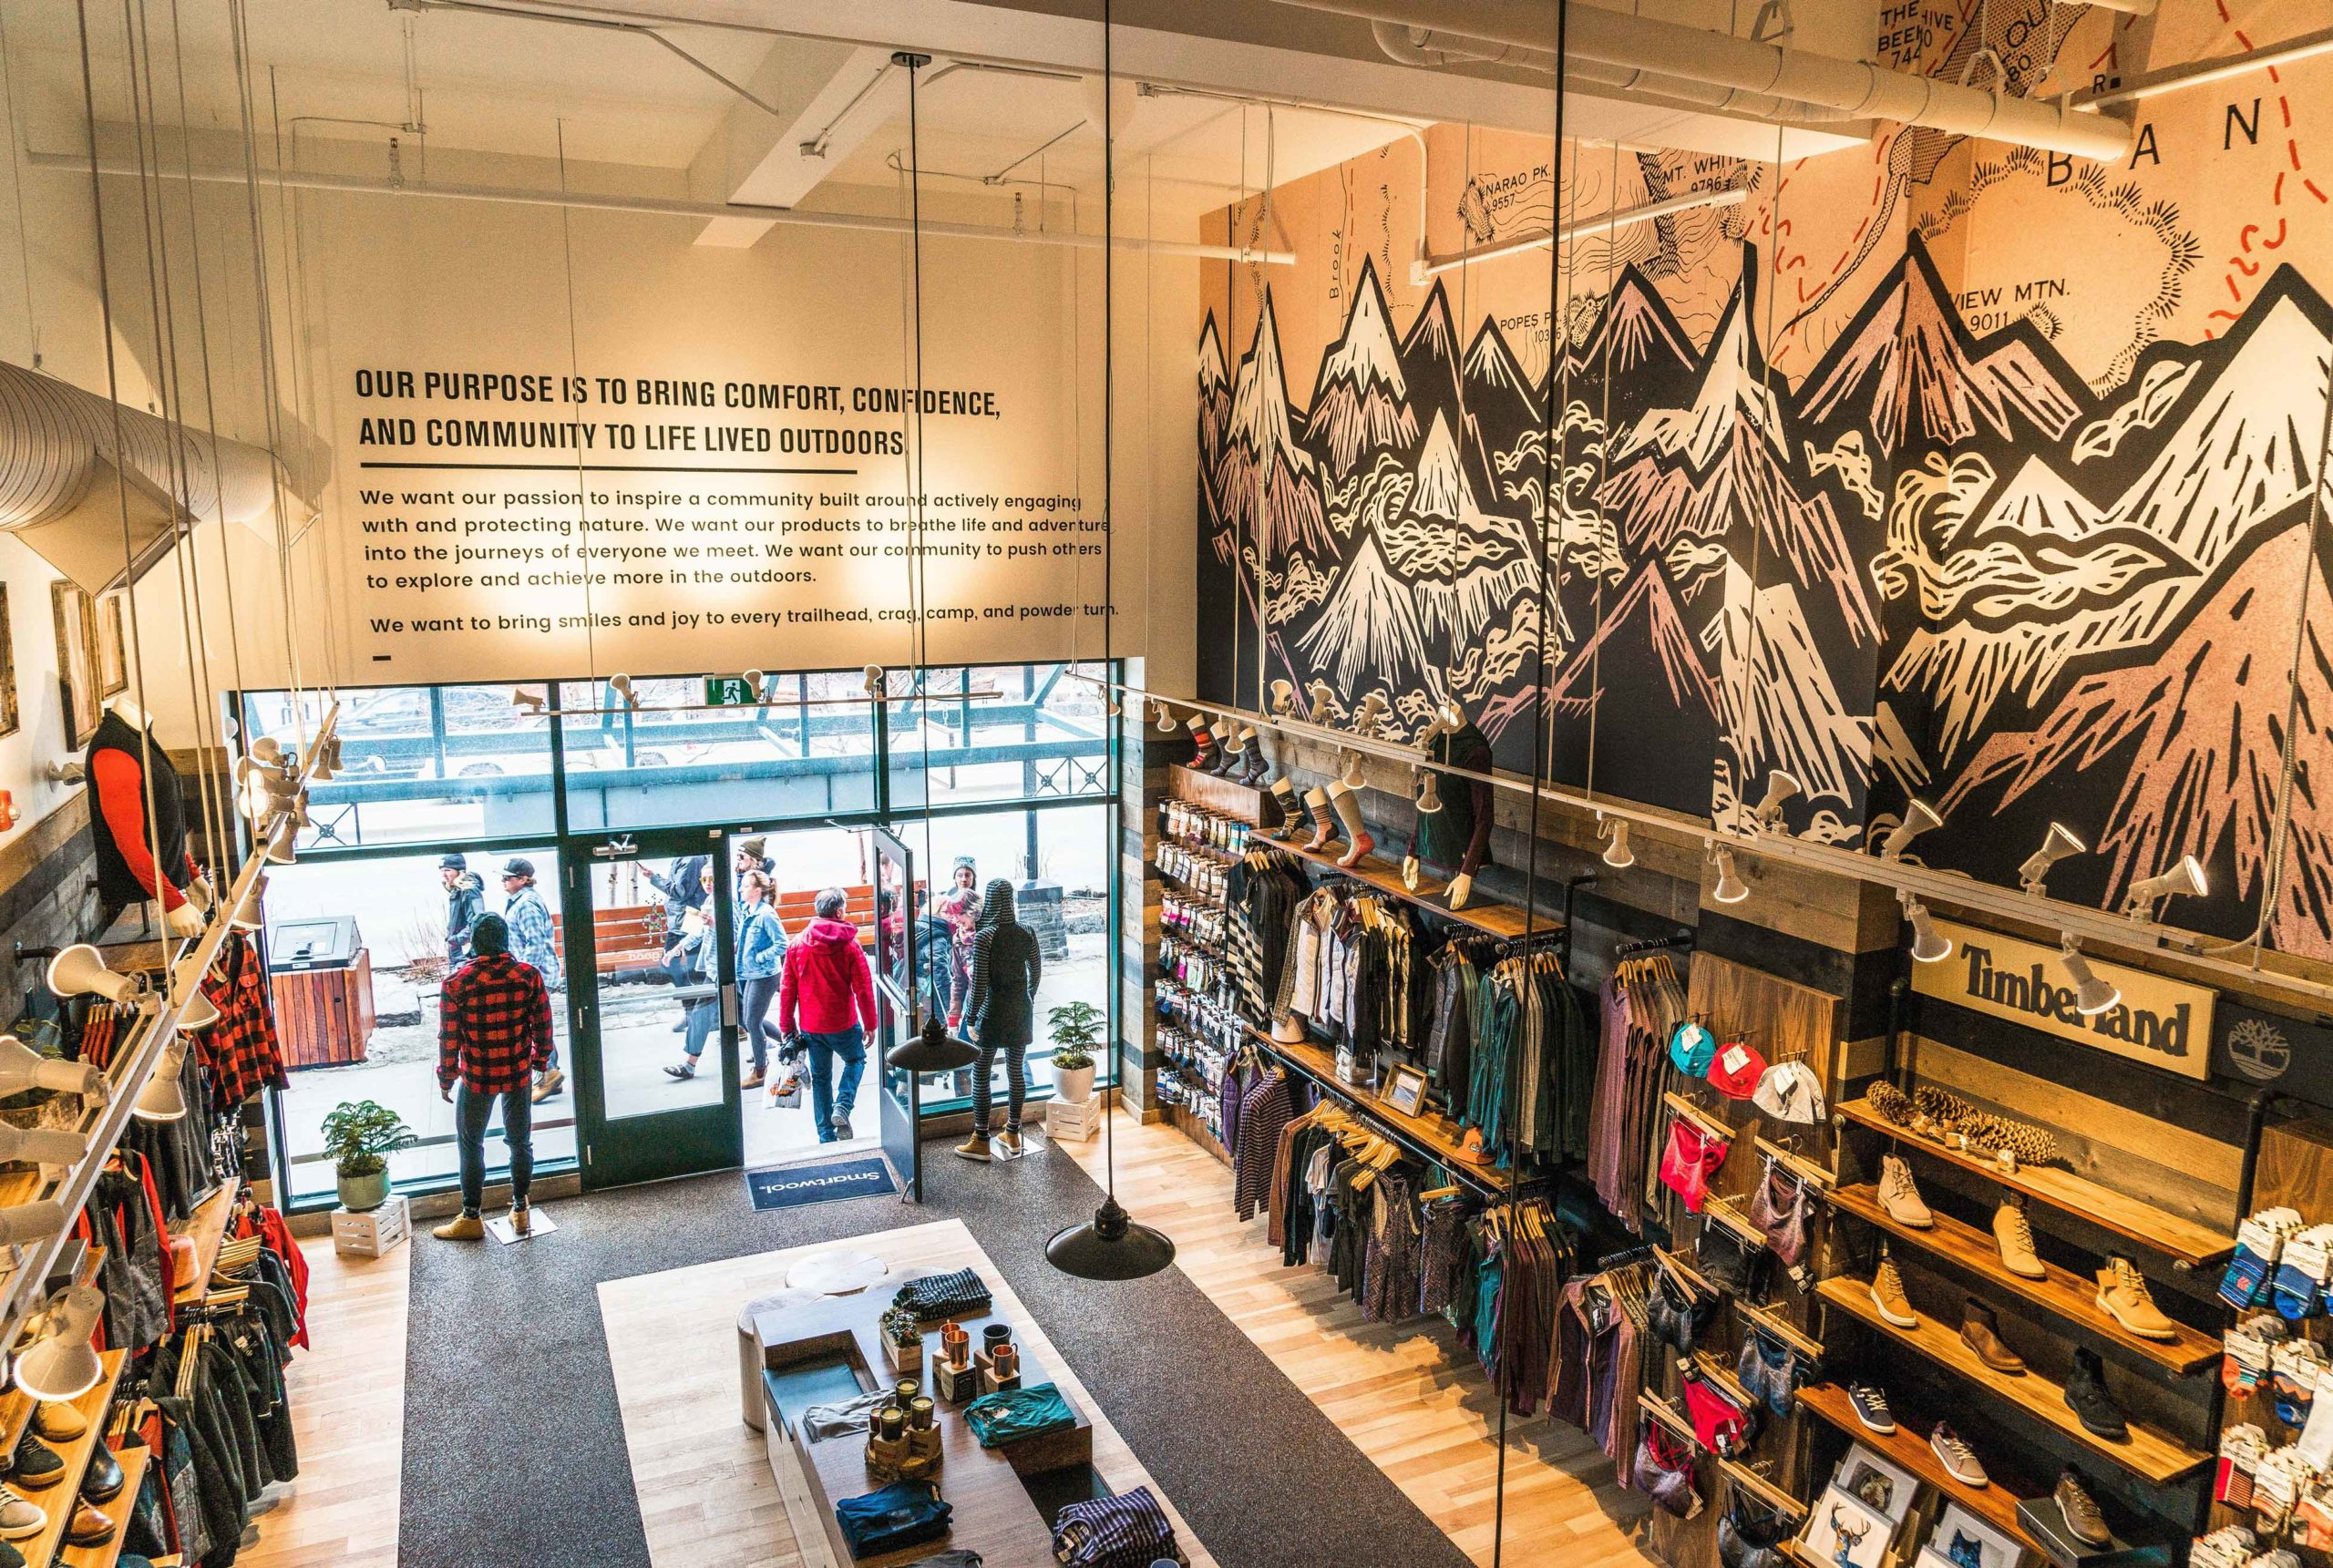 The interior of the Smartwool Banff store was designed to reflect the outdoors. It also meets Covid social distancing requirements.